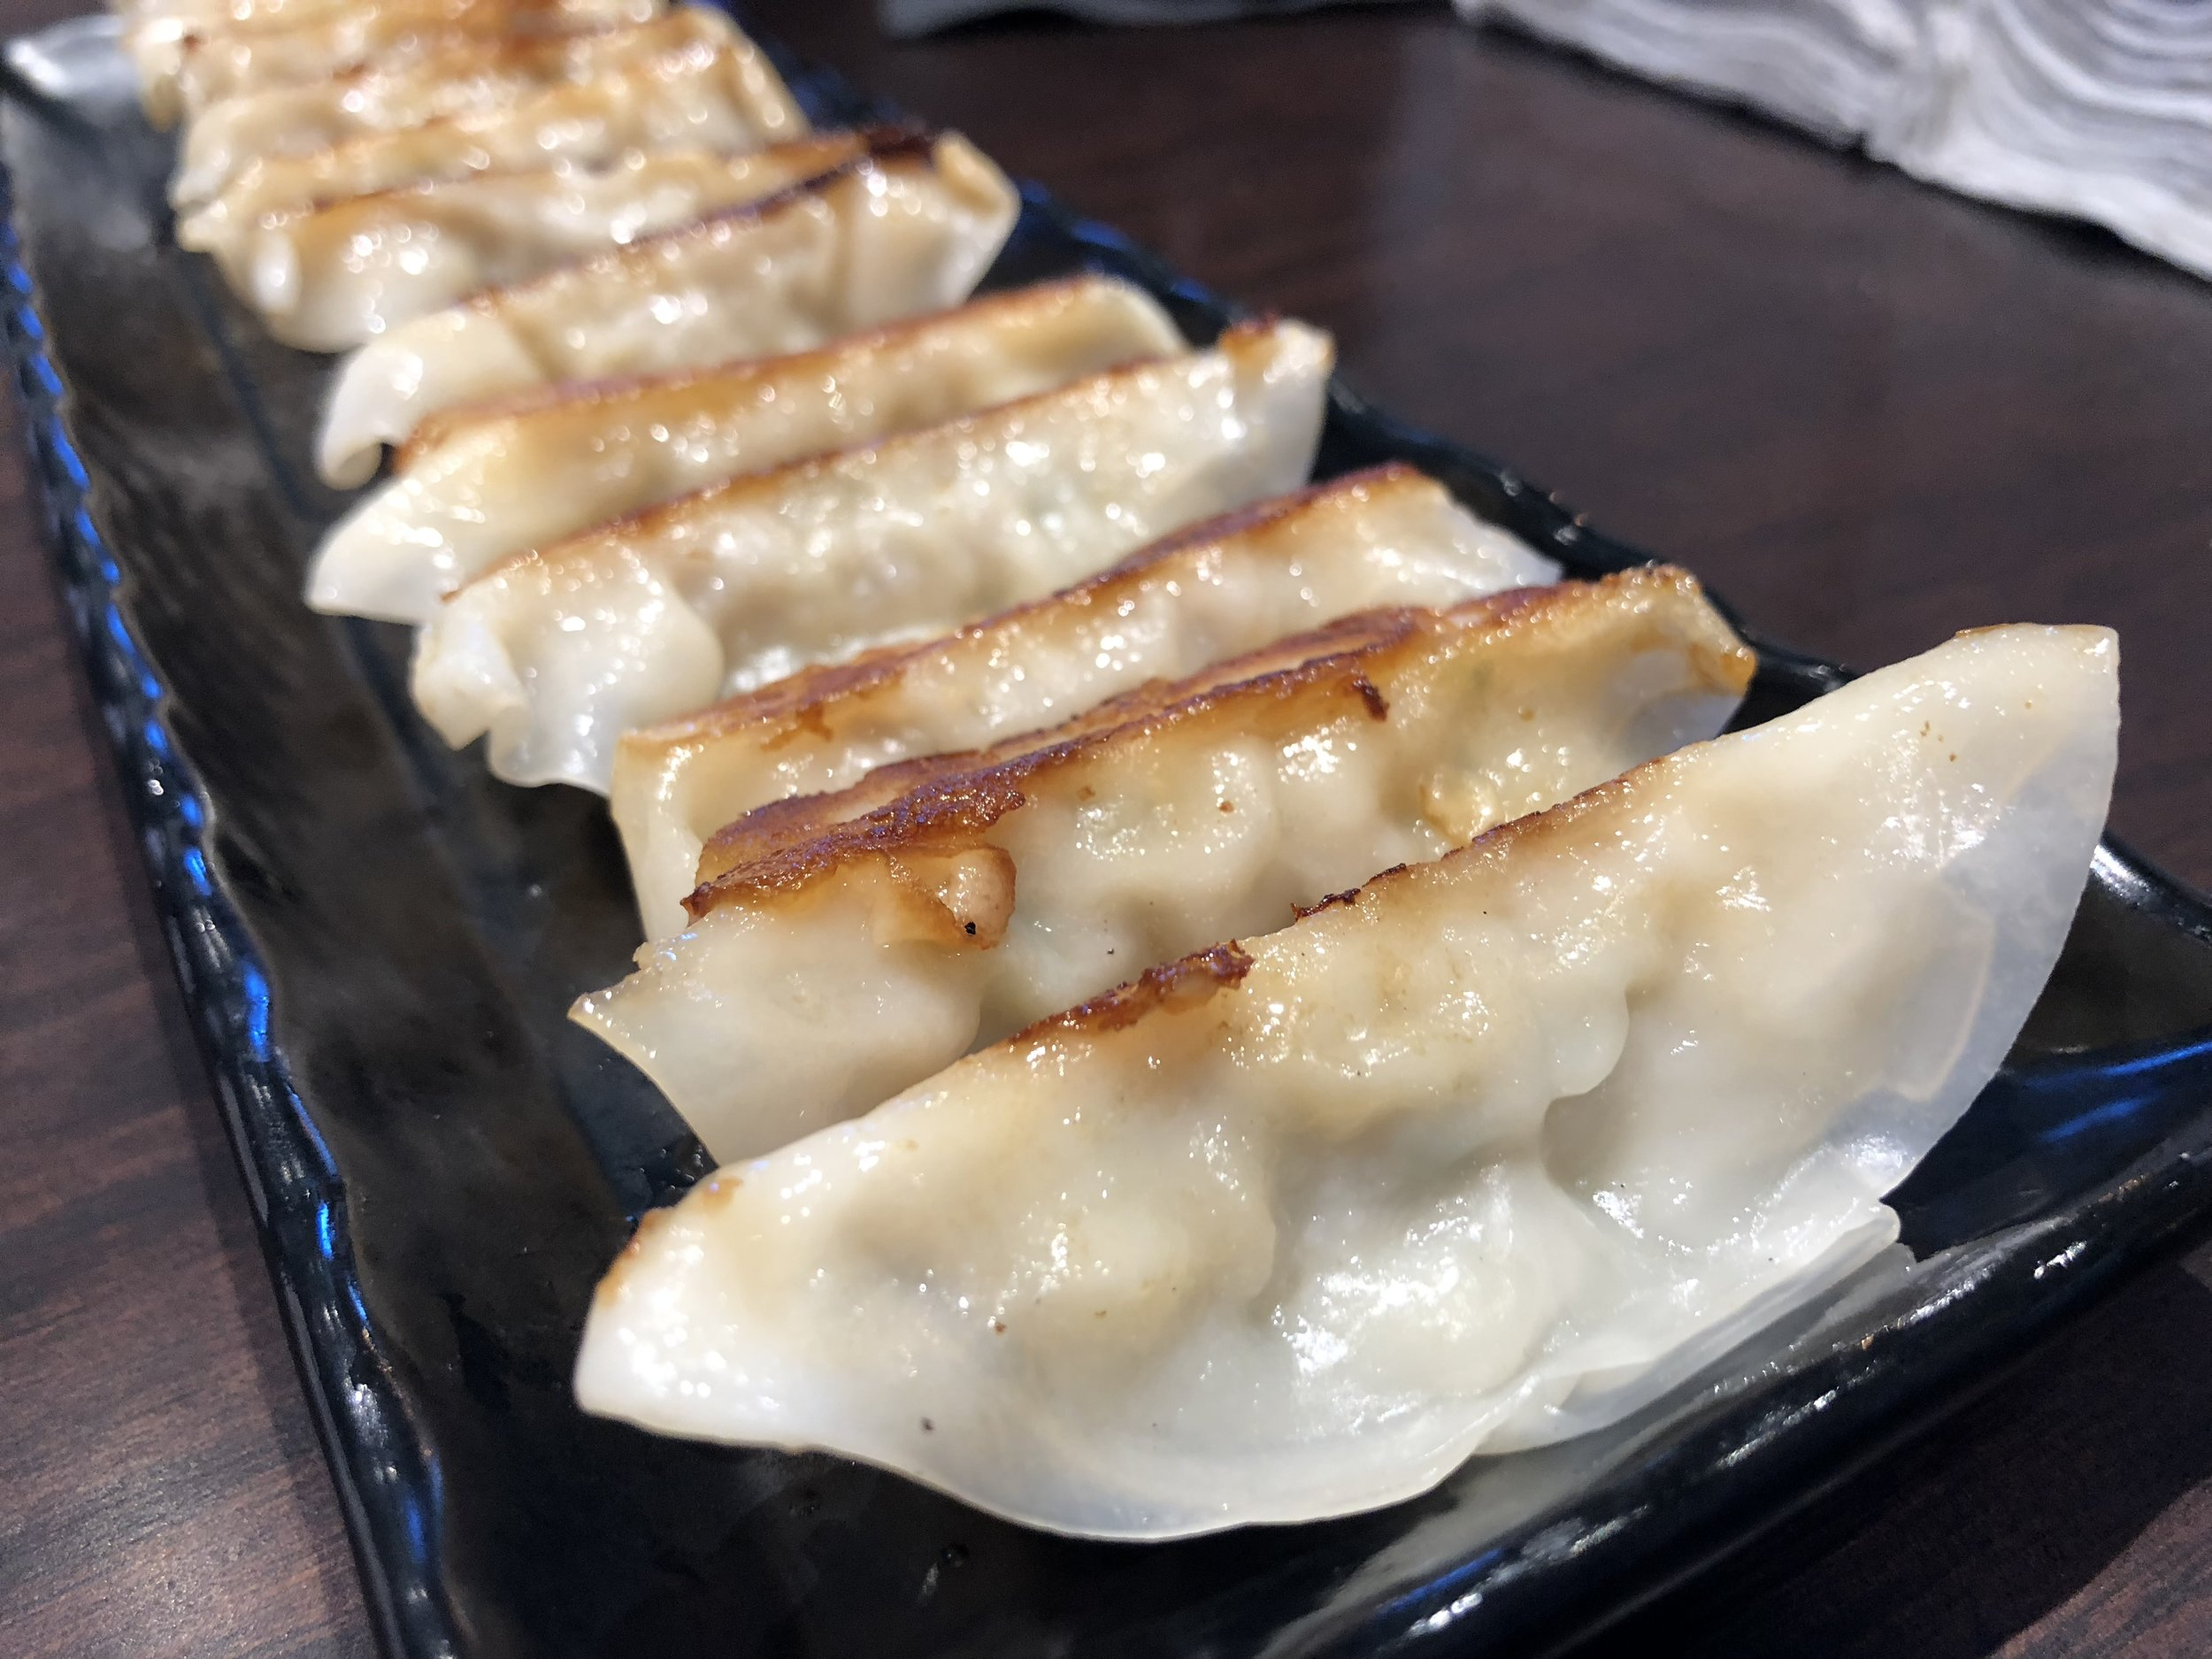 Gyoza - The staple.